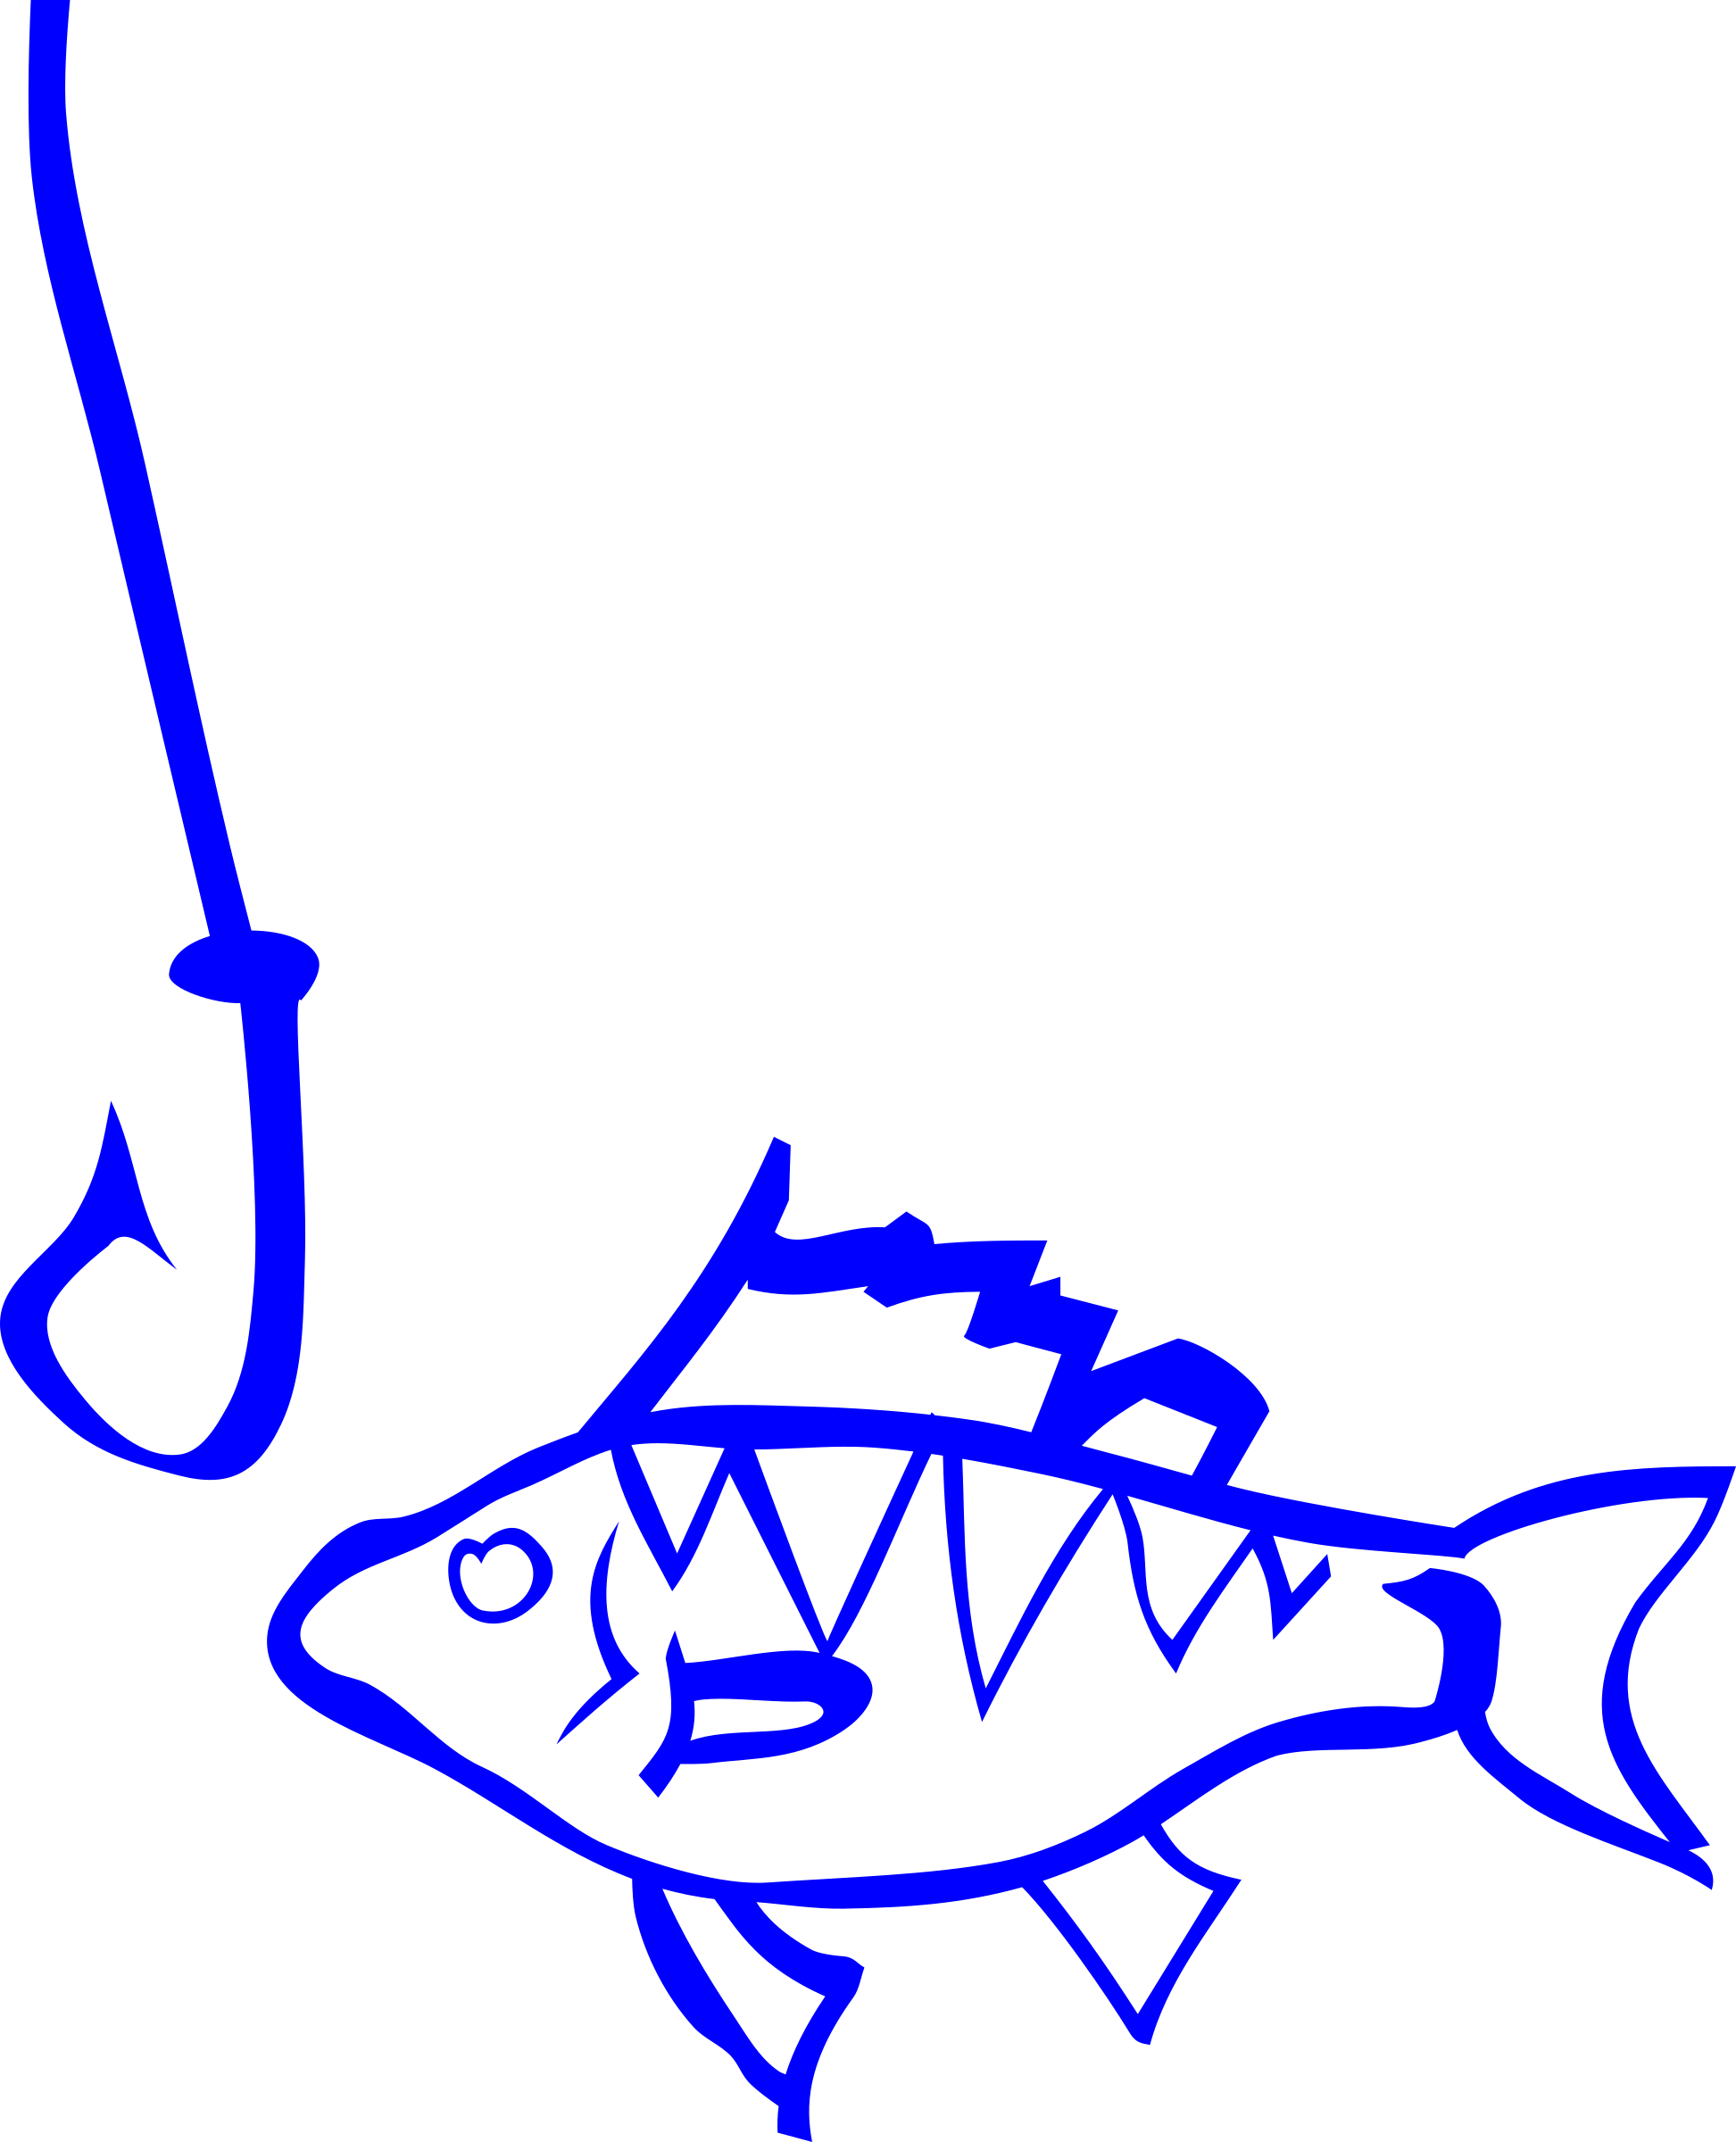 Fish on a line clipart svg library library Clipart - Graffiti Fish and hook svg library library